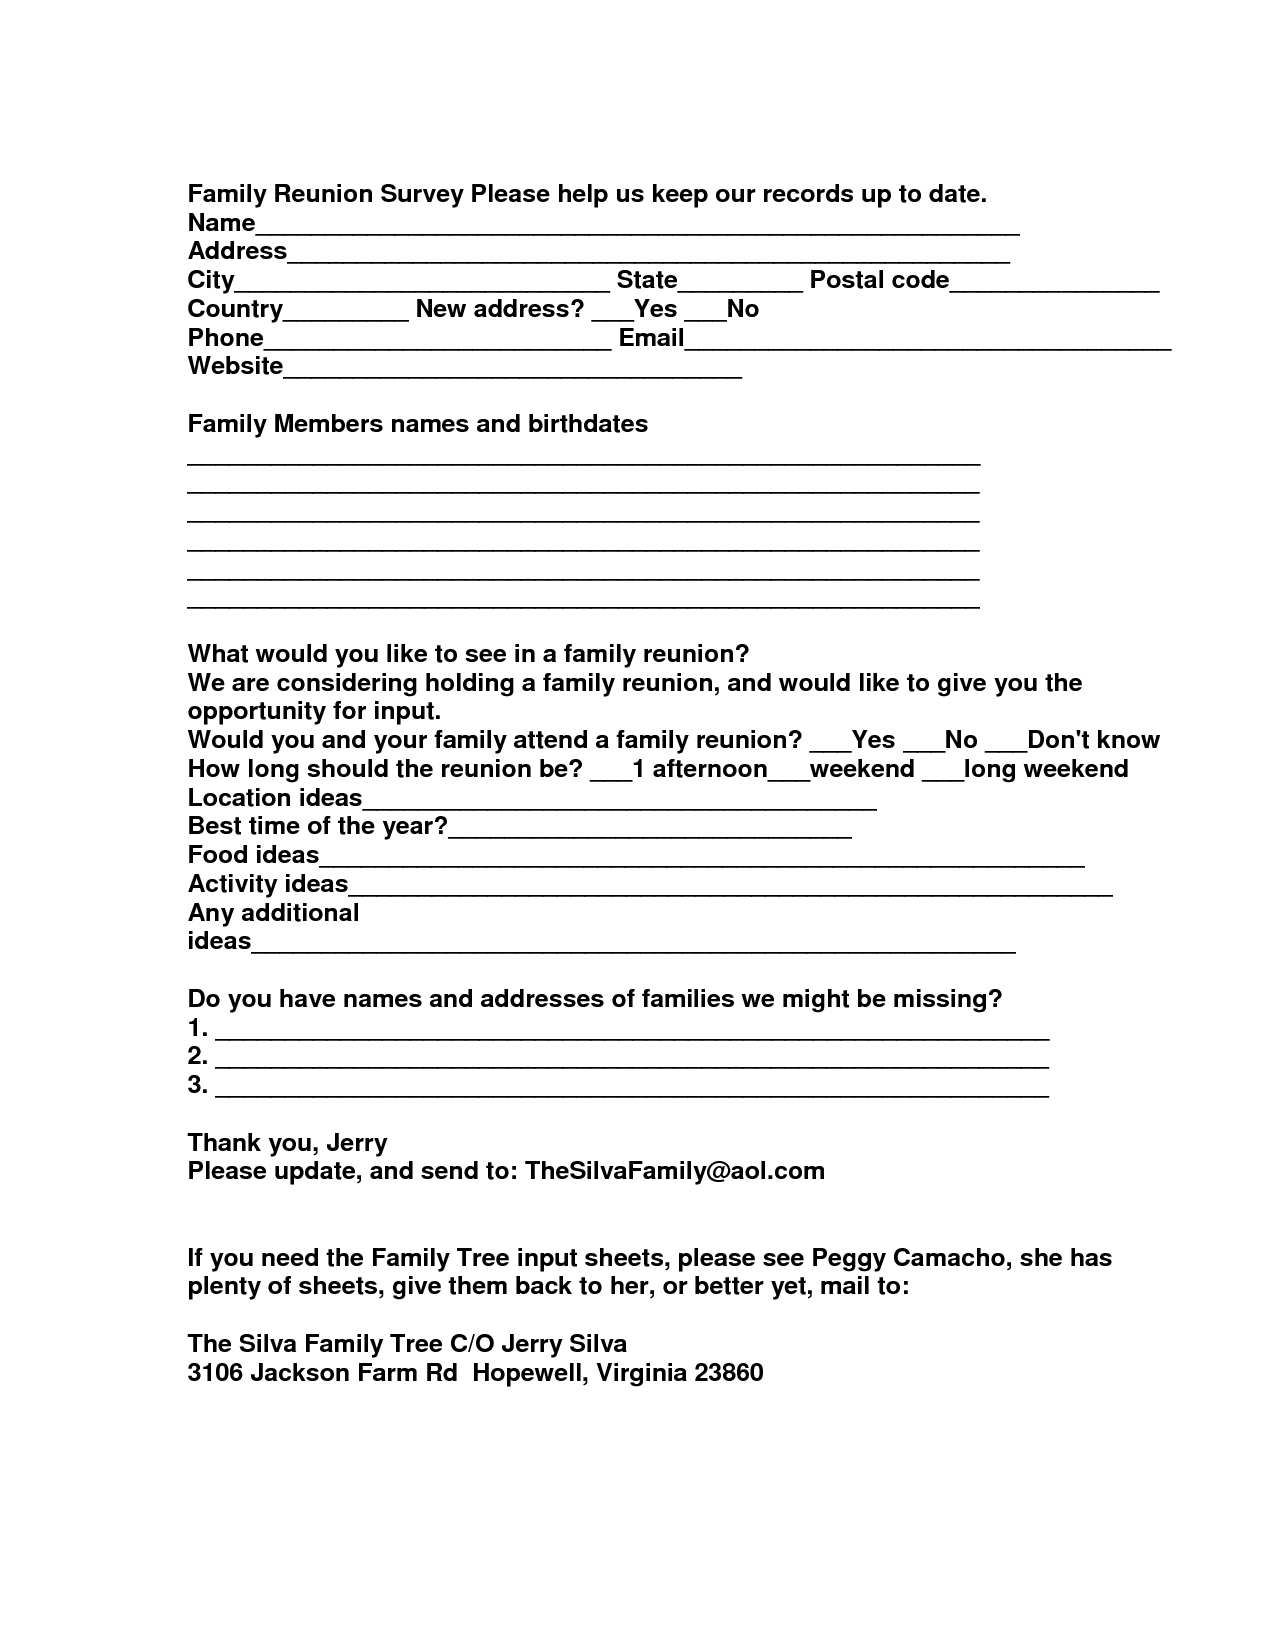 10 Fantastic African American Family Reunion Ideas family reunion food ideas family reunion survey please help us 2021